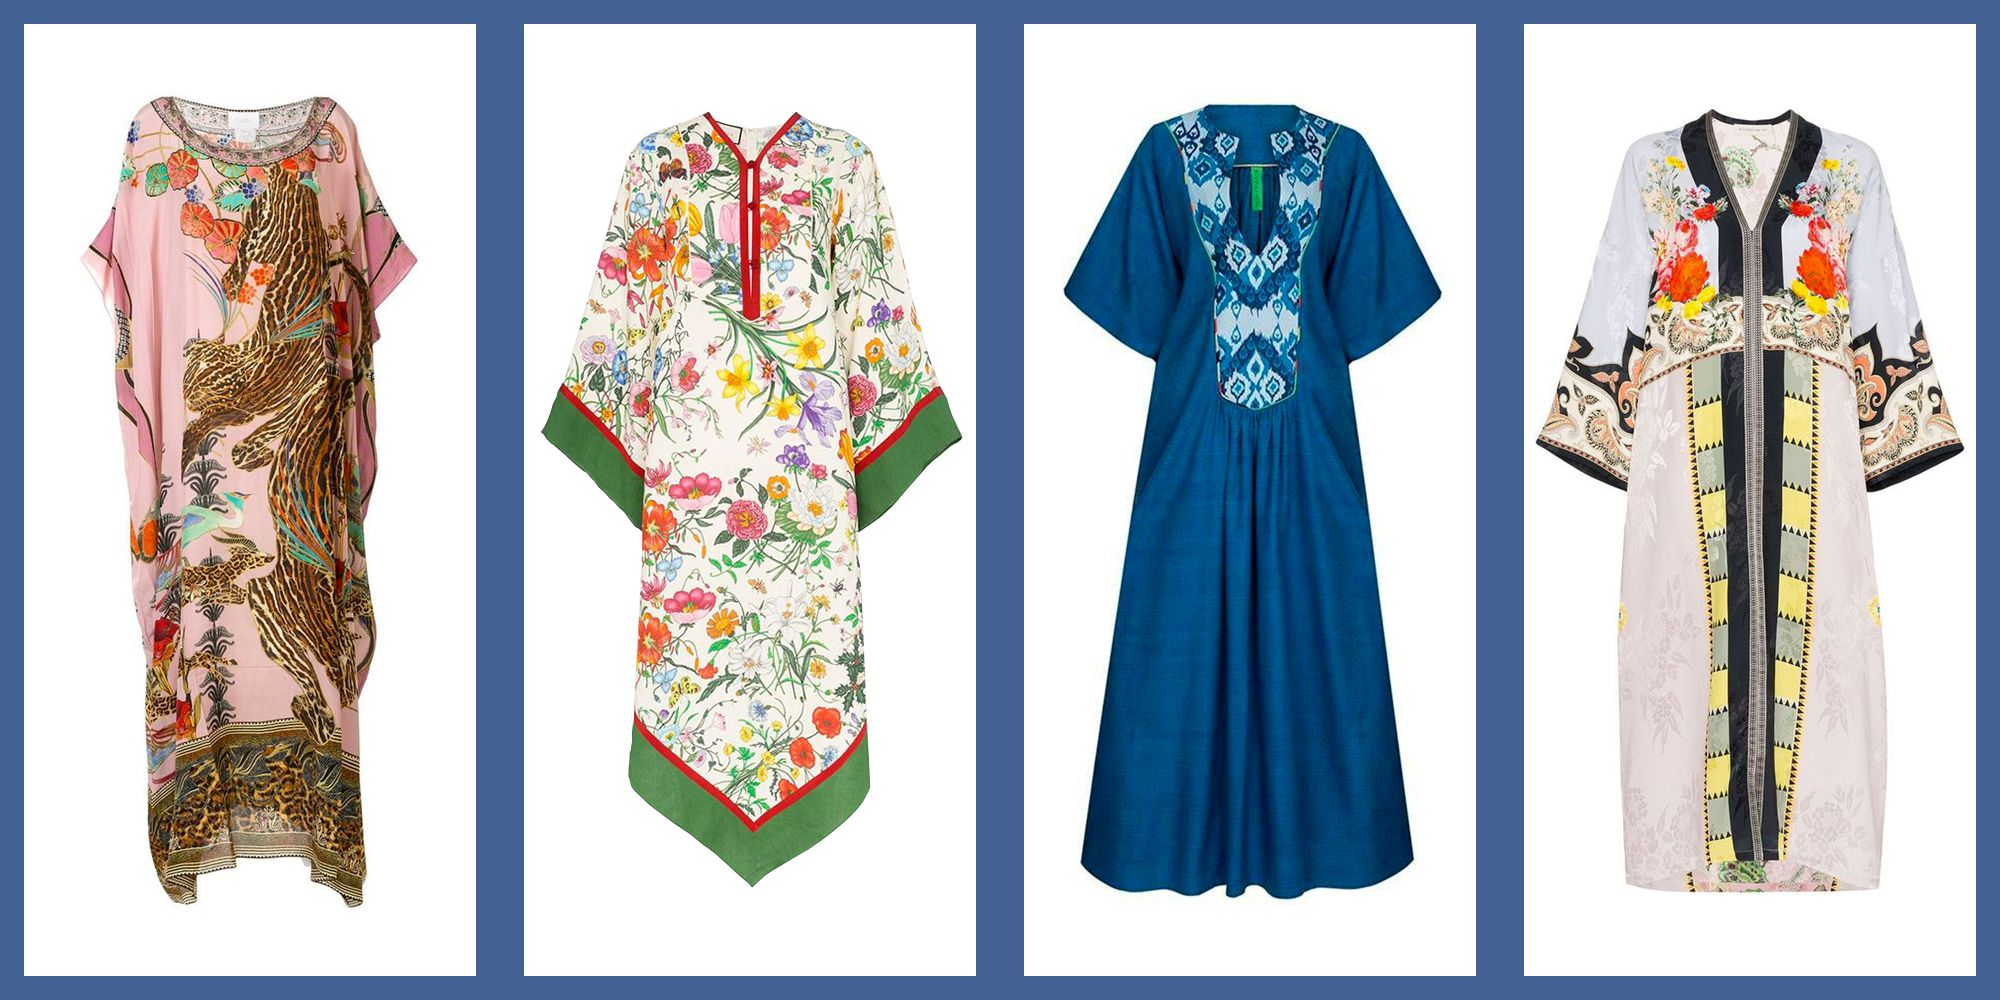 More Than a Cover-Up: Cool Ways to Wear and Glam Up Your Kaftan